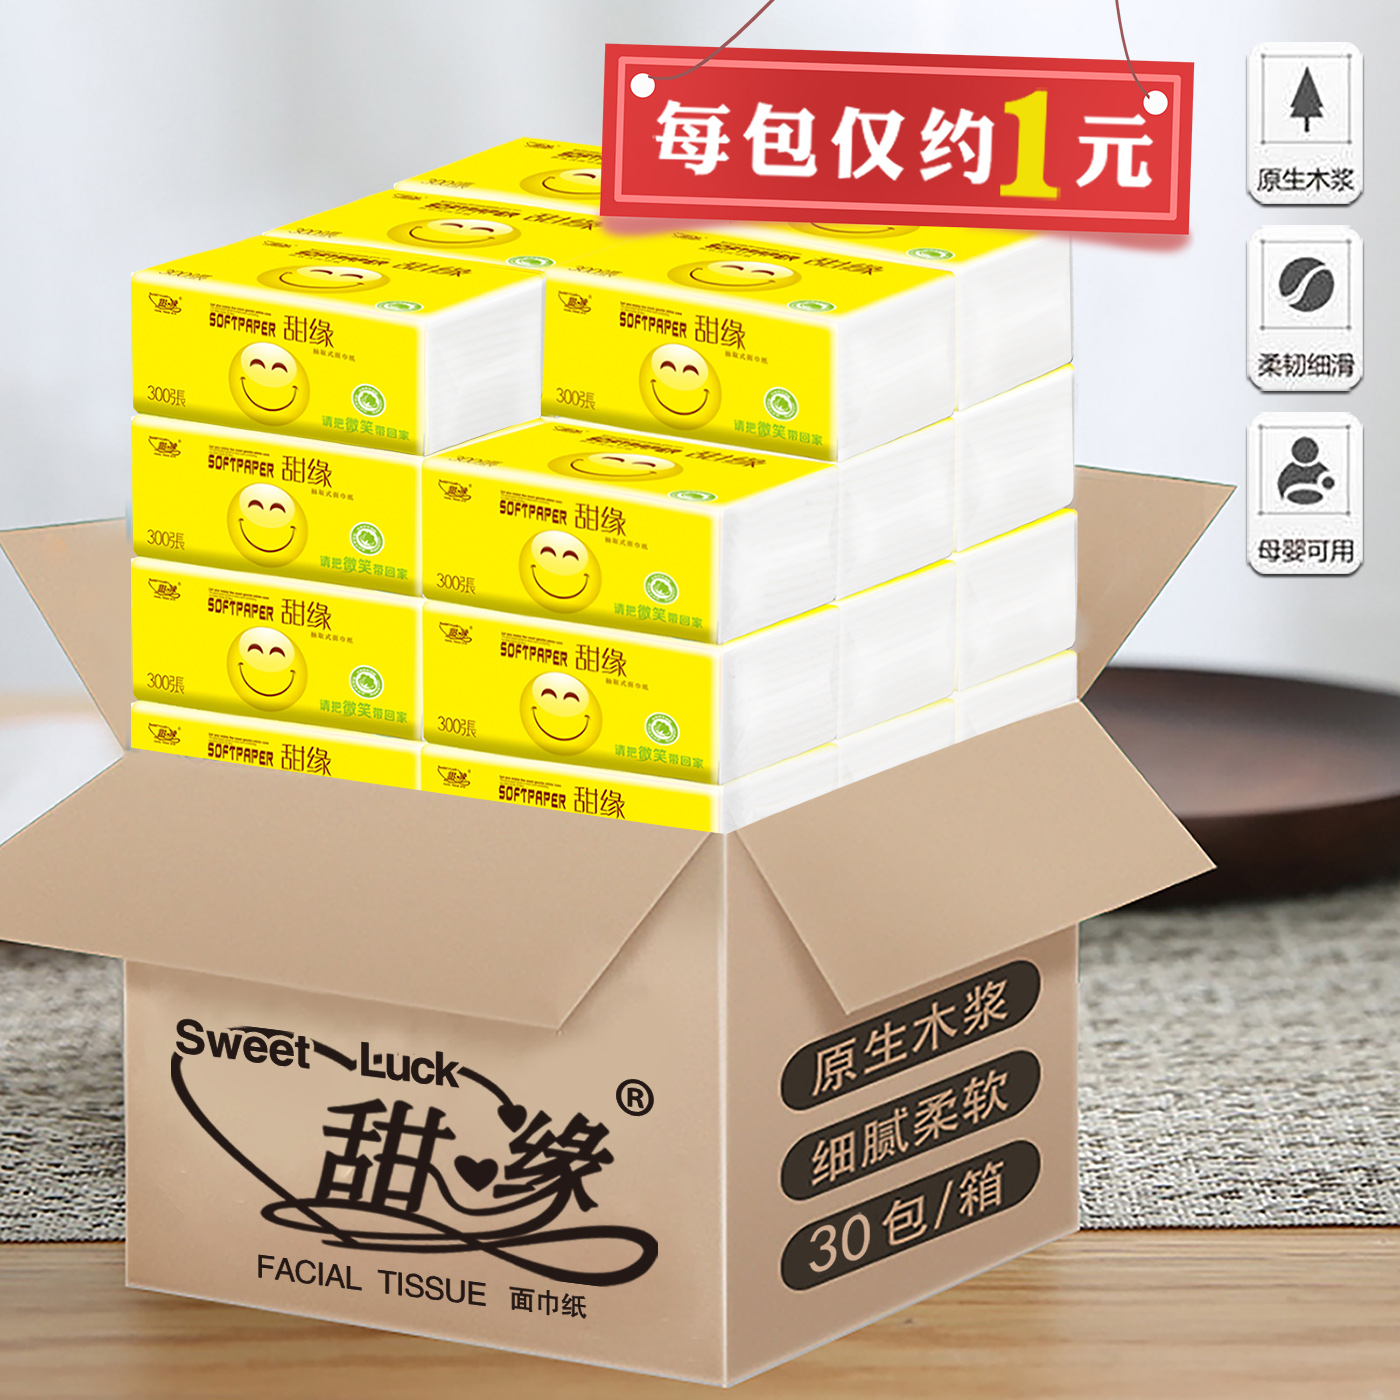 Sweet edge wood extraction paper 30 packaging removable face towel paper towel napkin toilet paper full box Family Pack